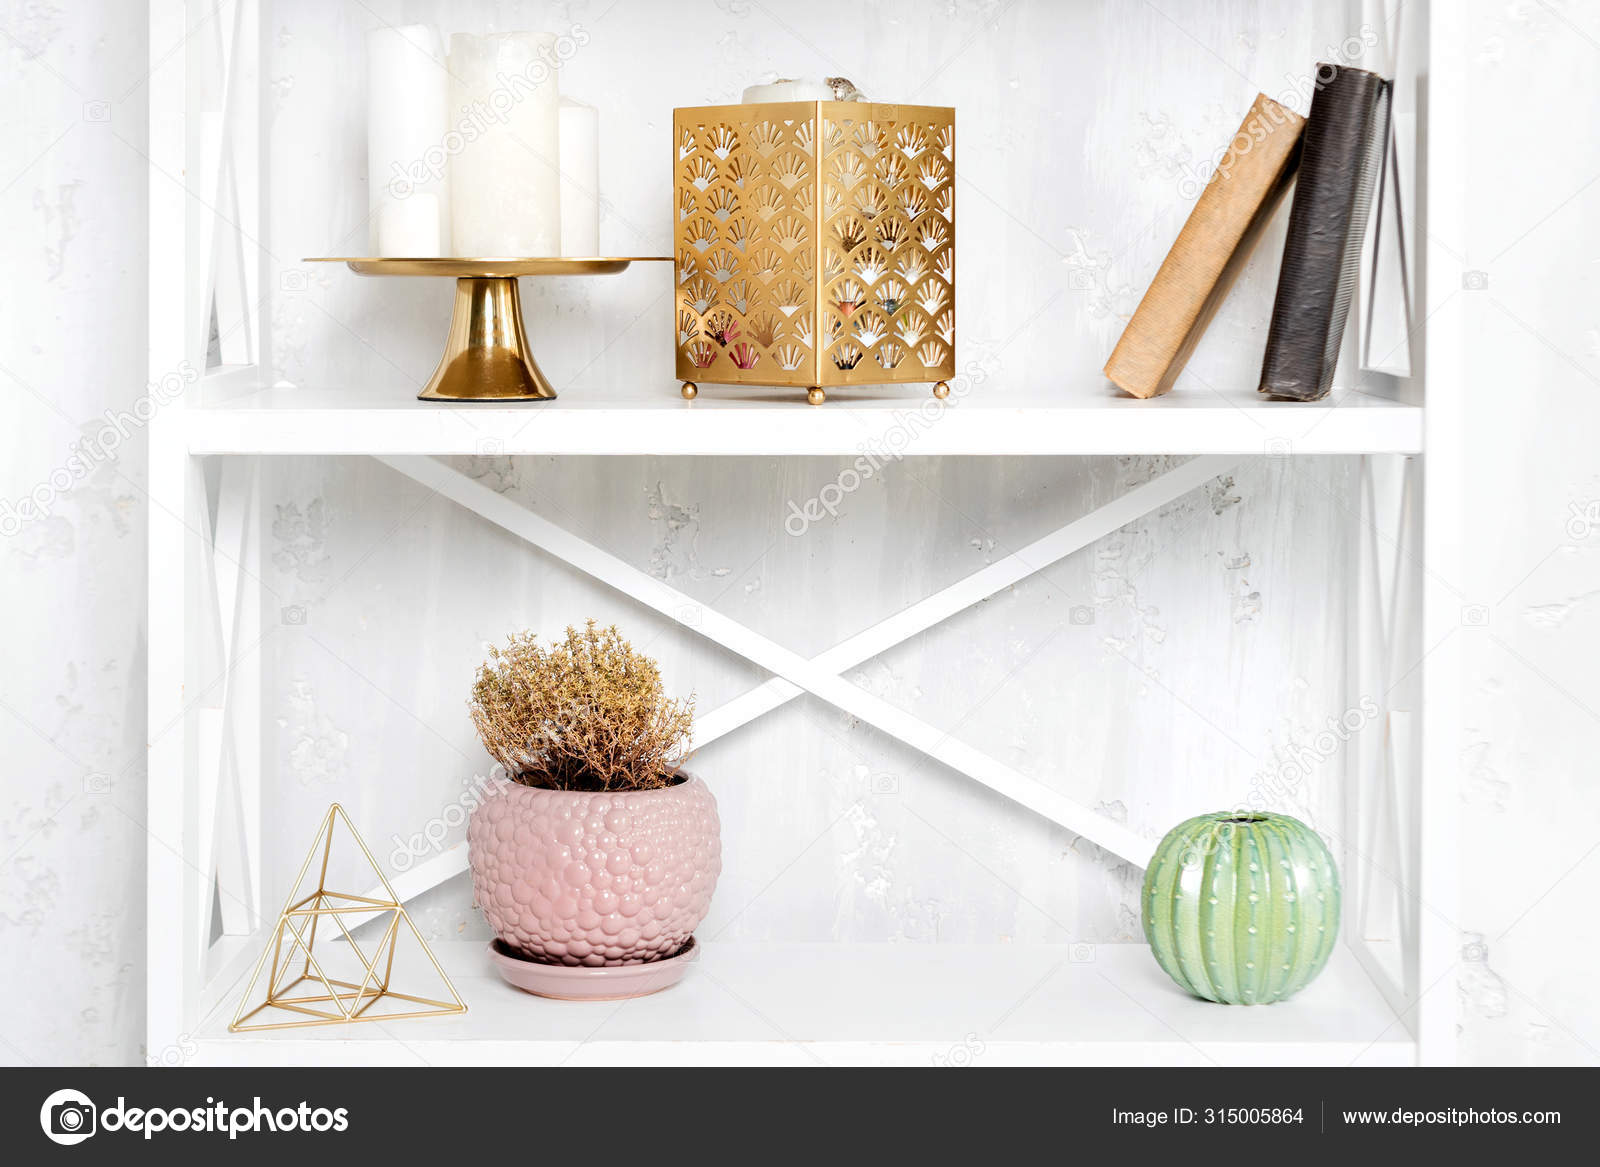 Wooden Shelving Unit With Decor Near Grey Wall Bookcase With Photo Frame Mockup And Candles Living Room Interior Details Stock Photo C Magryt Artur 315005864